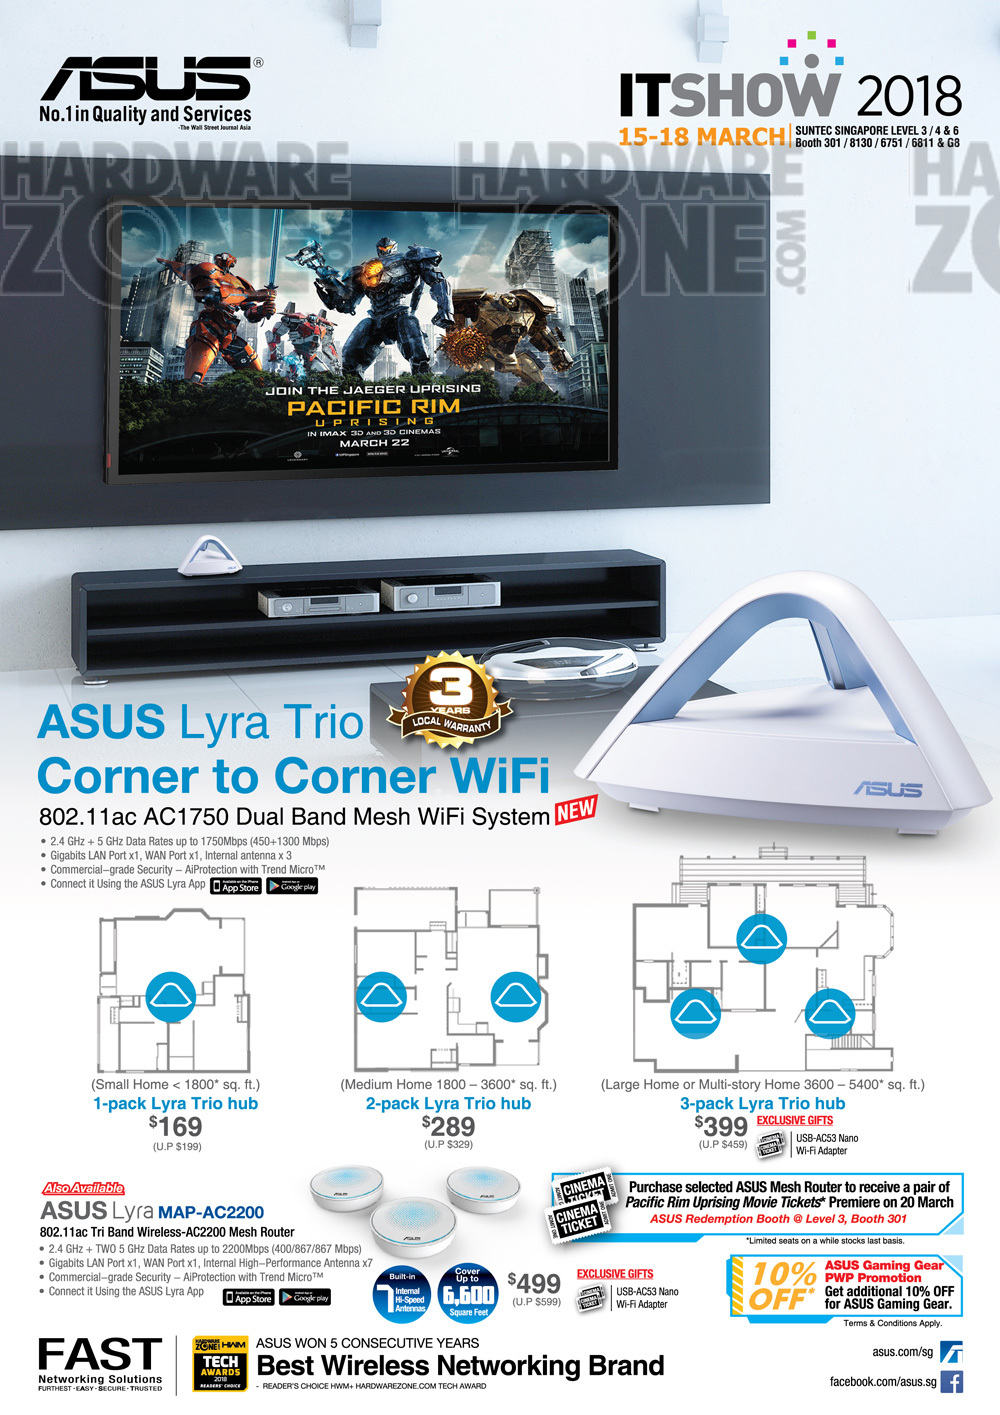 ASUS Networking - Pg 1 Brochures from IT Show 2018 Singapore